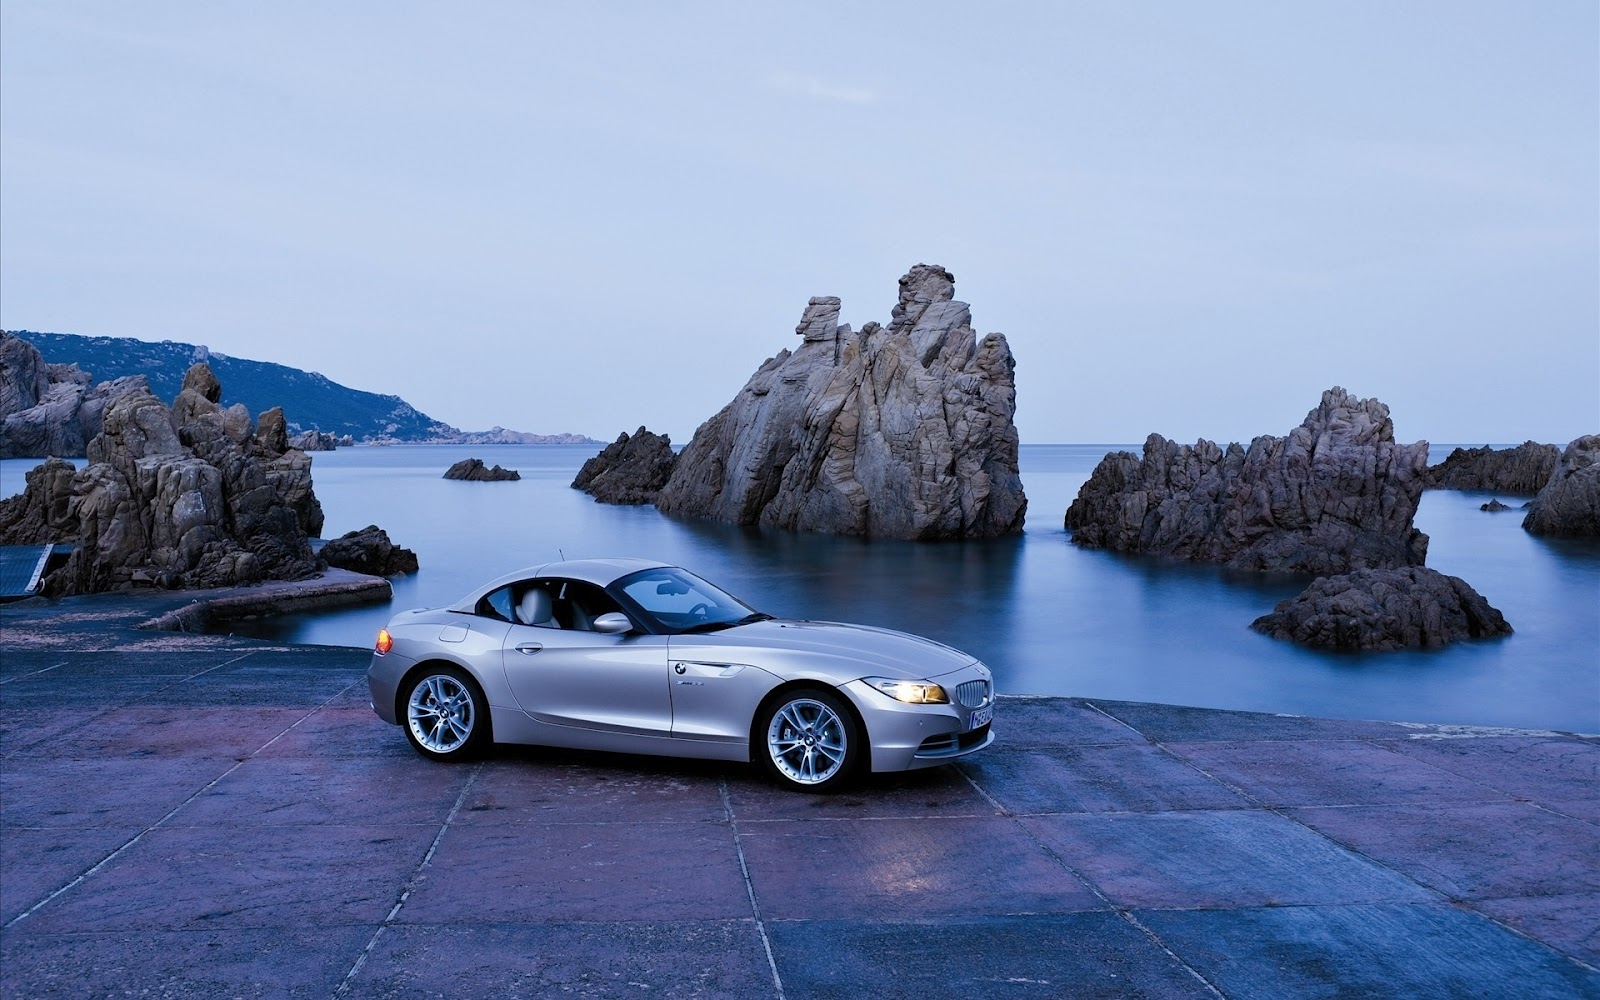 Full Hd Bmw Bay Cliff Rocks Car